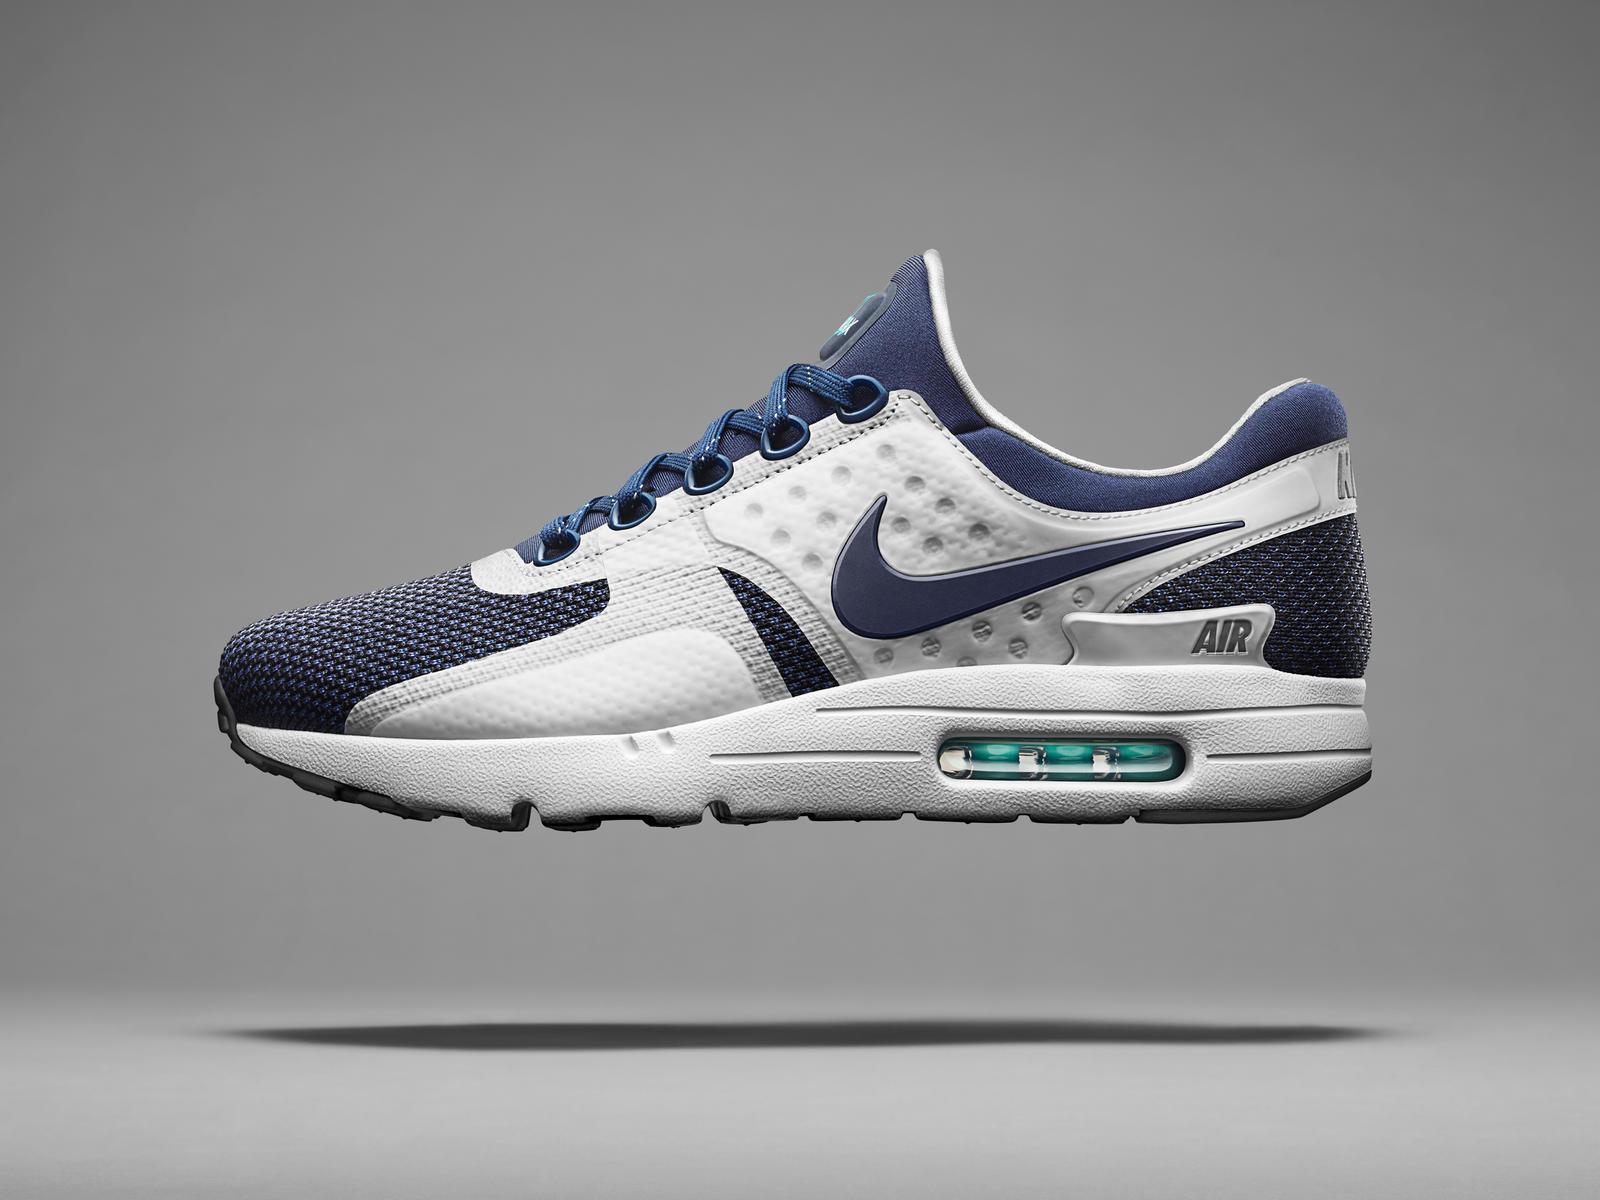 4472ee9be39 De Zero a 1  a história do primeiro Air Max - Nike News